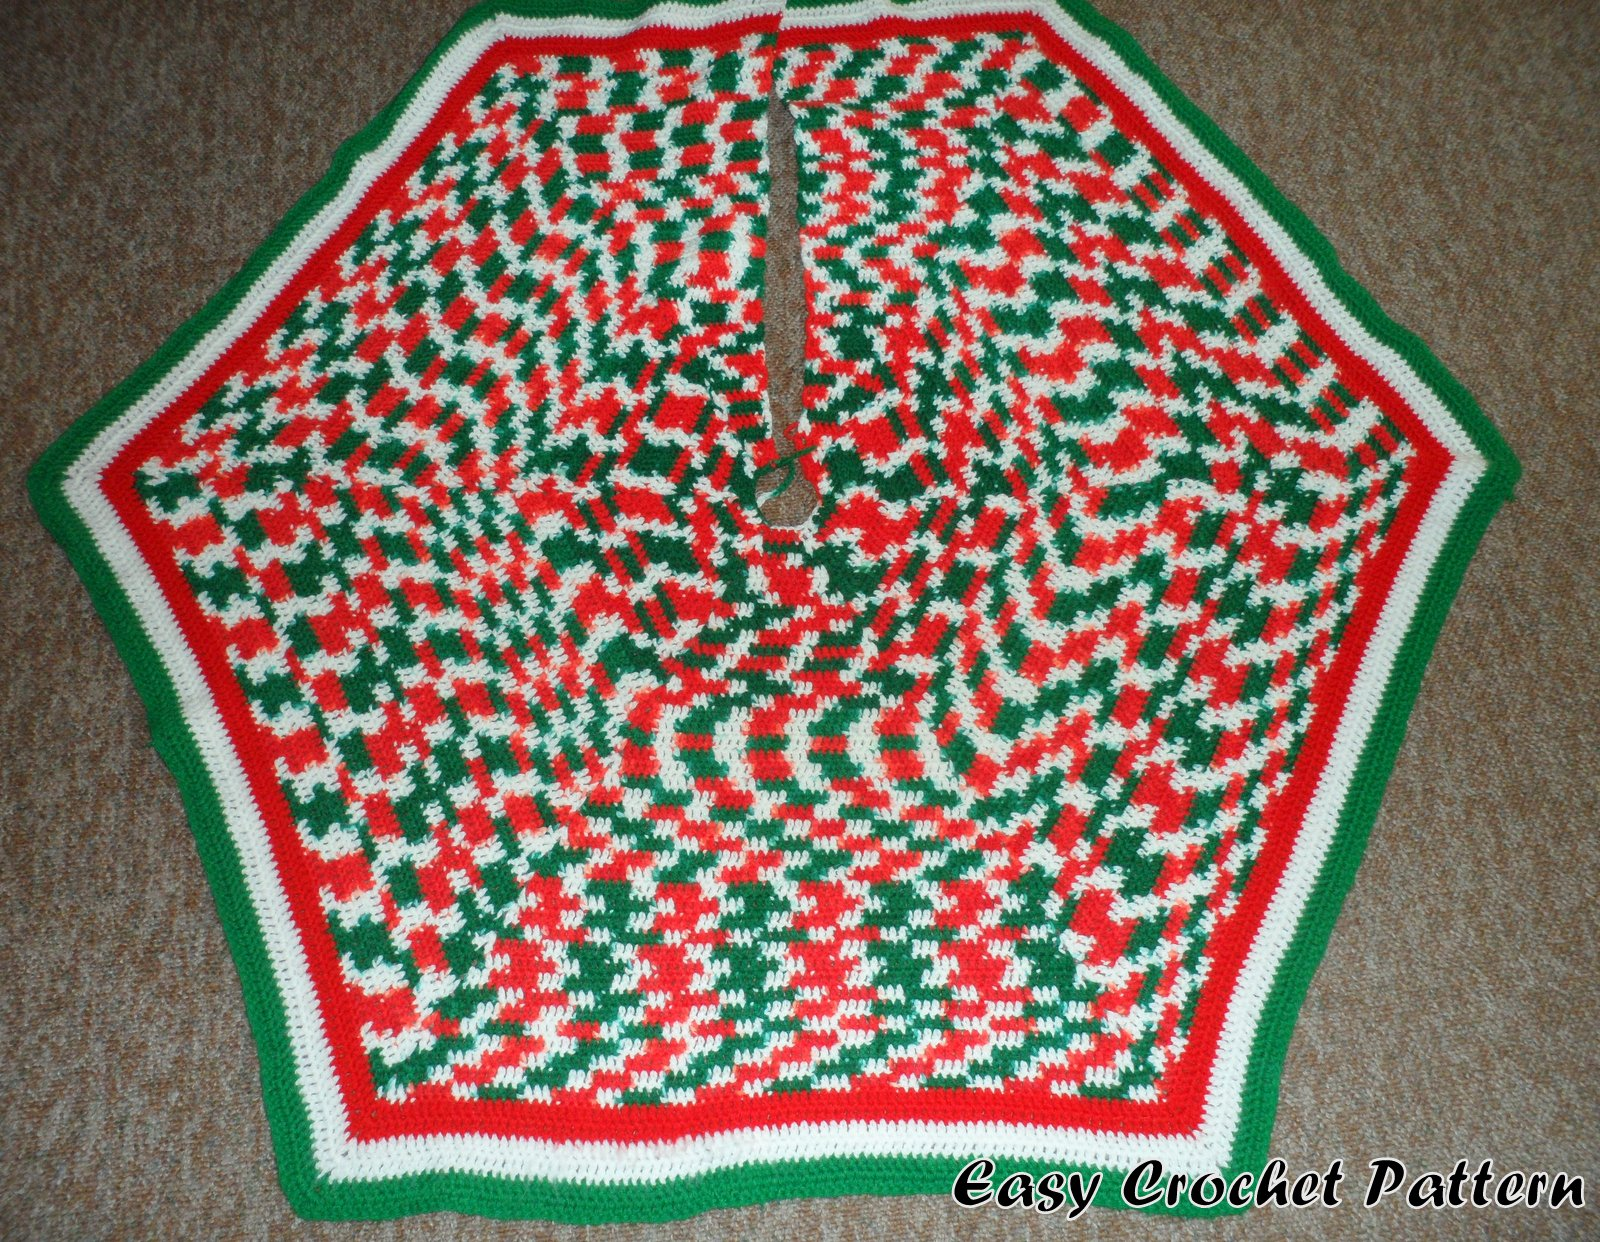 Easy Crochet Pattern: Easy Crocheted Hexagon Christmas Tree Skirt